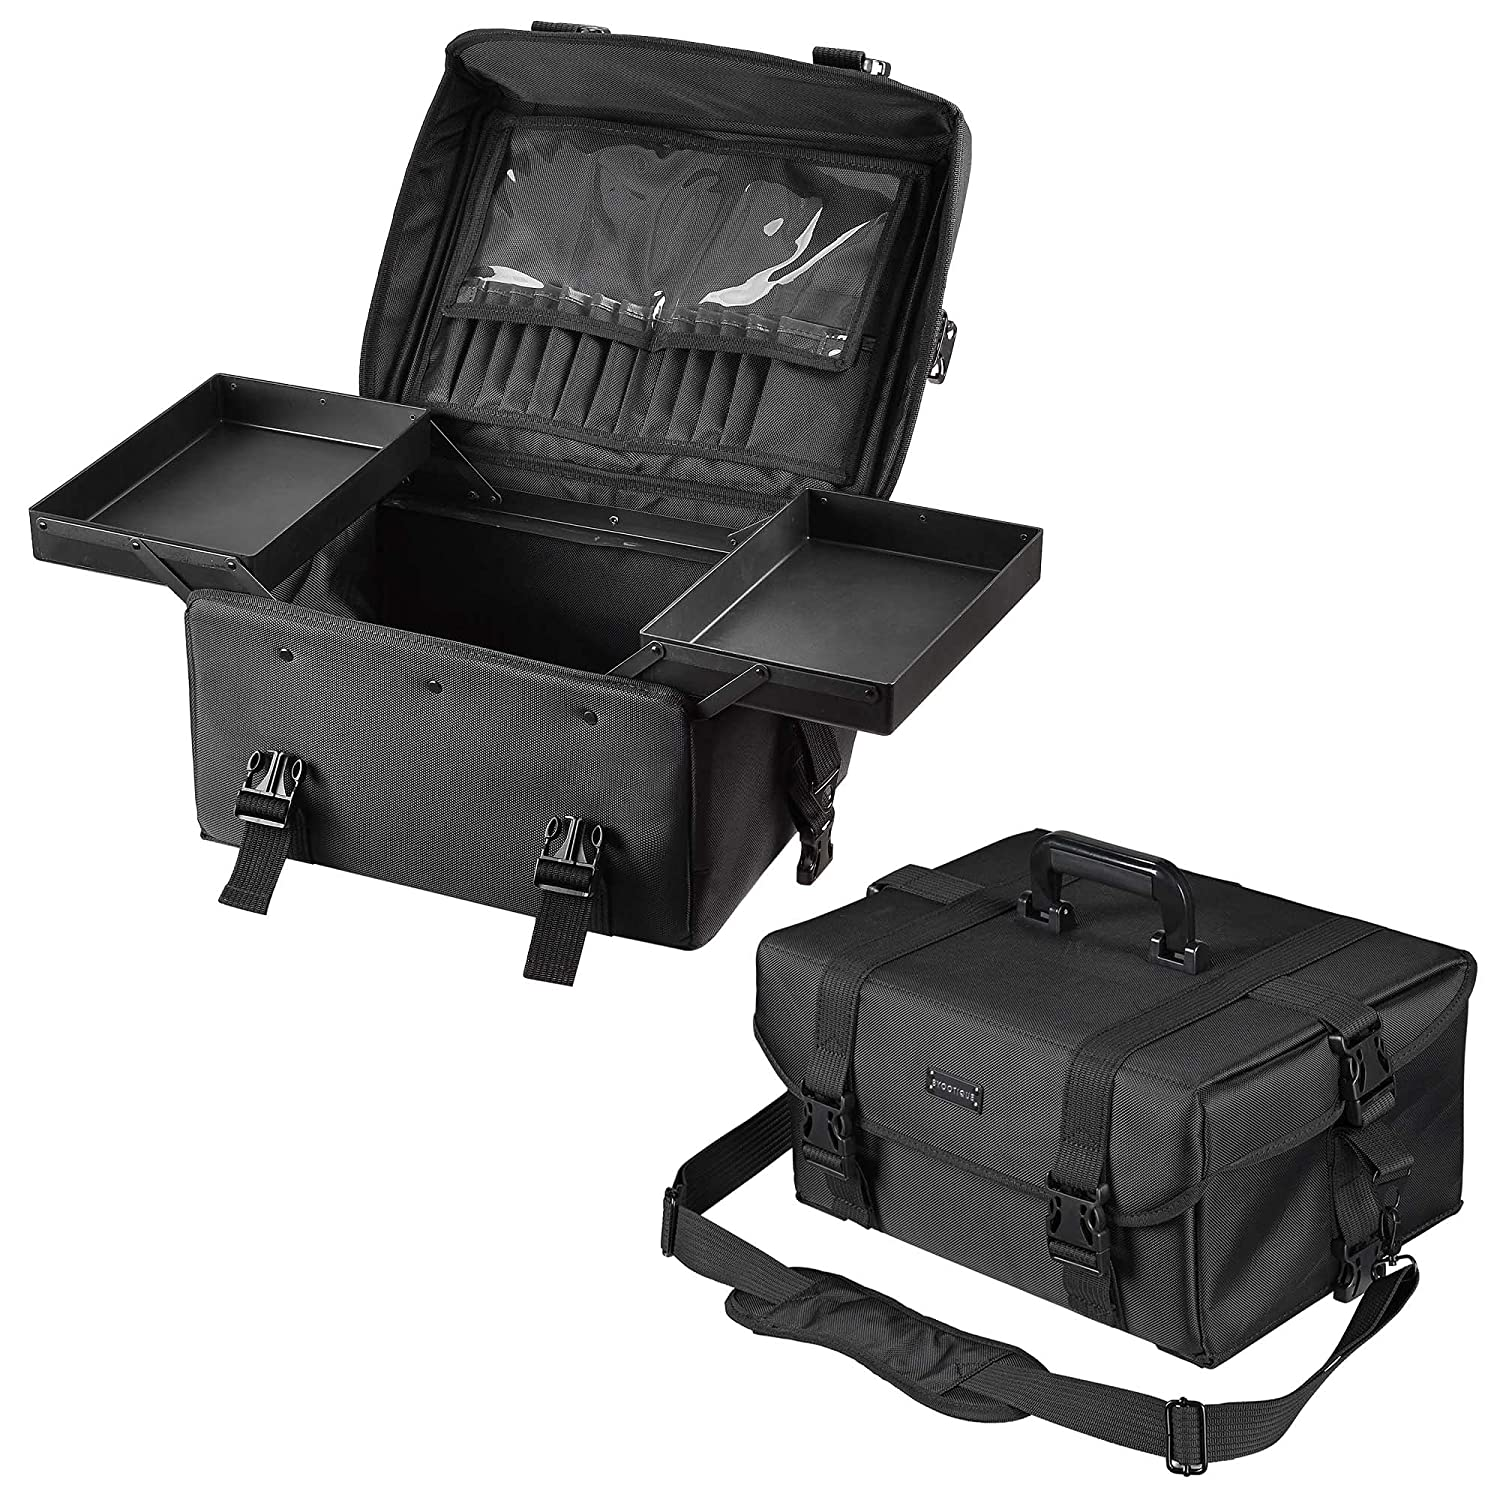 2 35% OFF in 1 Max 90% OFF Pro Oxford Rolling Train Case Black Cosmetic Makeup